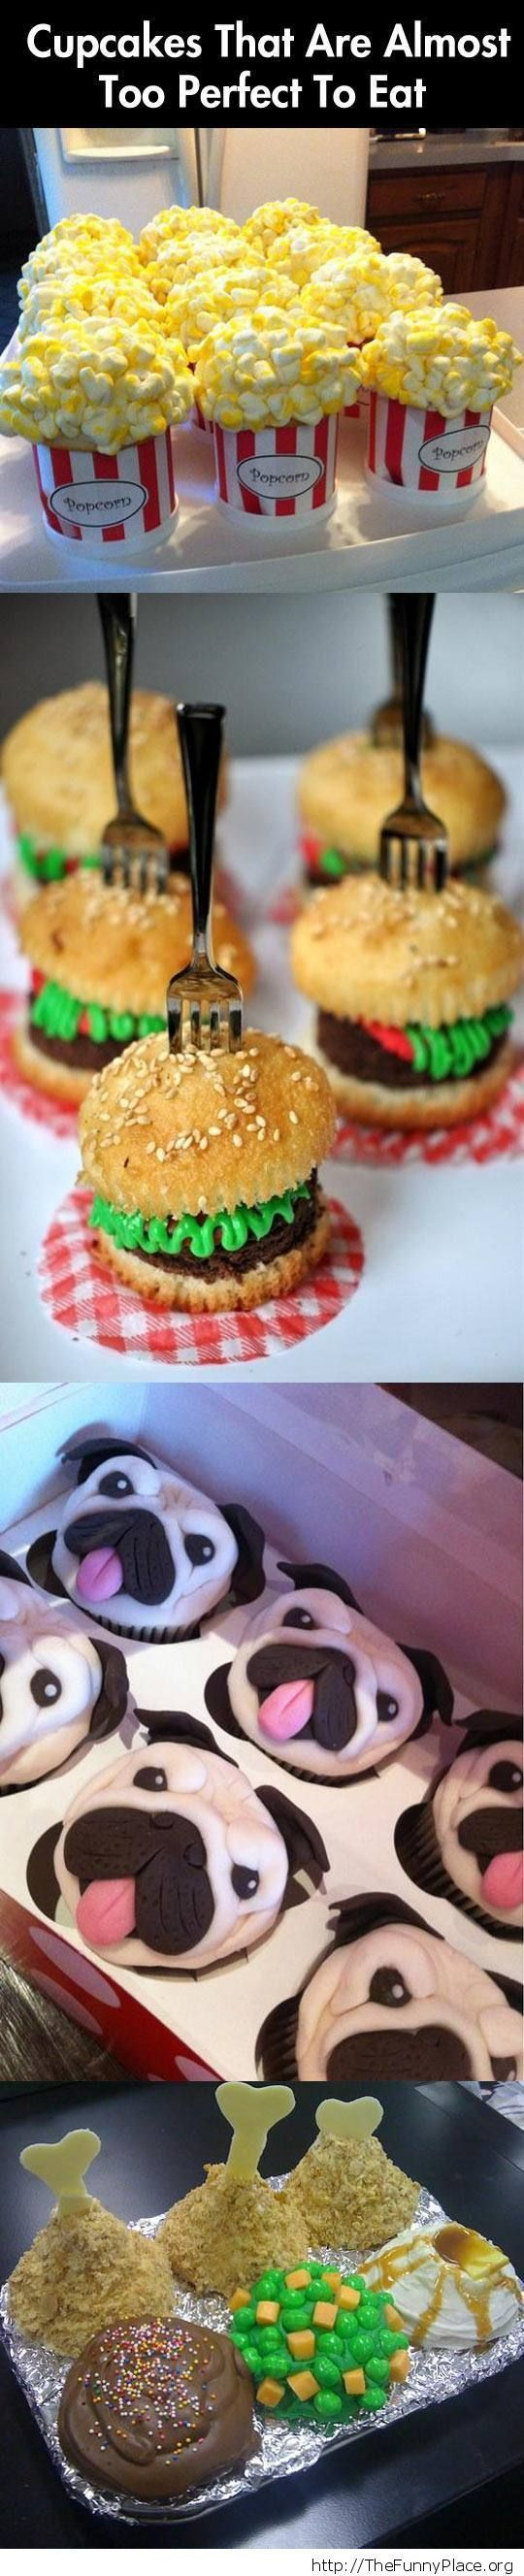 25+ best ideas about Cool Cupcakes on Pinterest | Cool ...